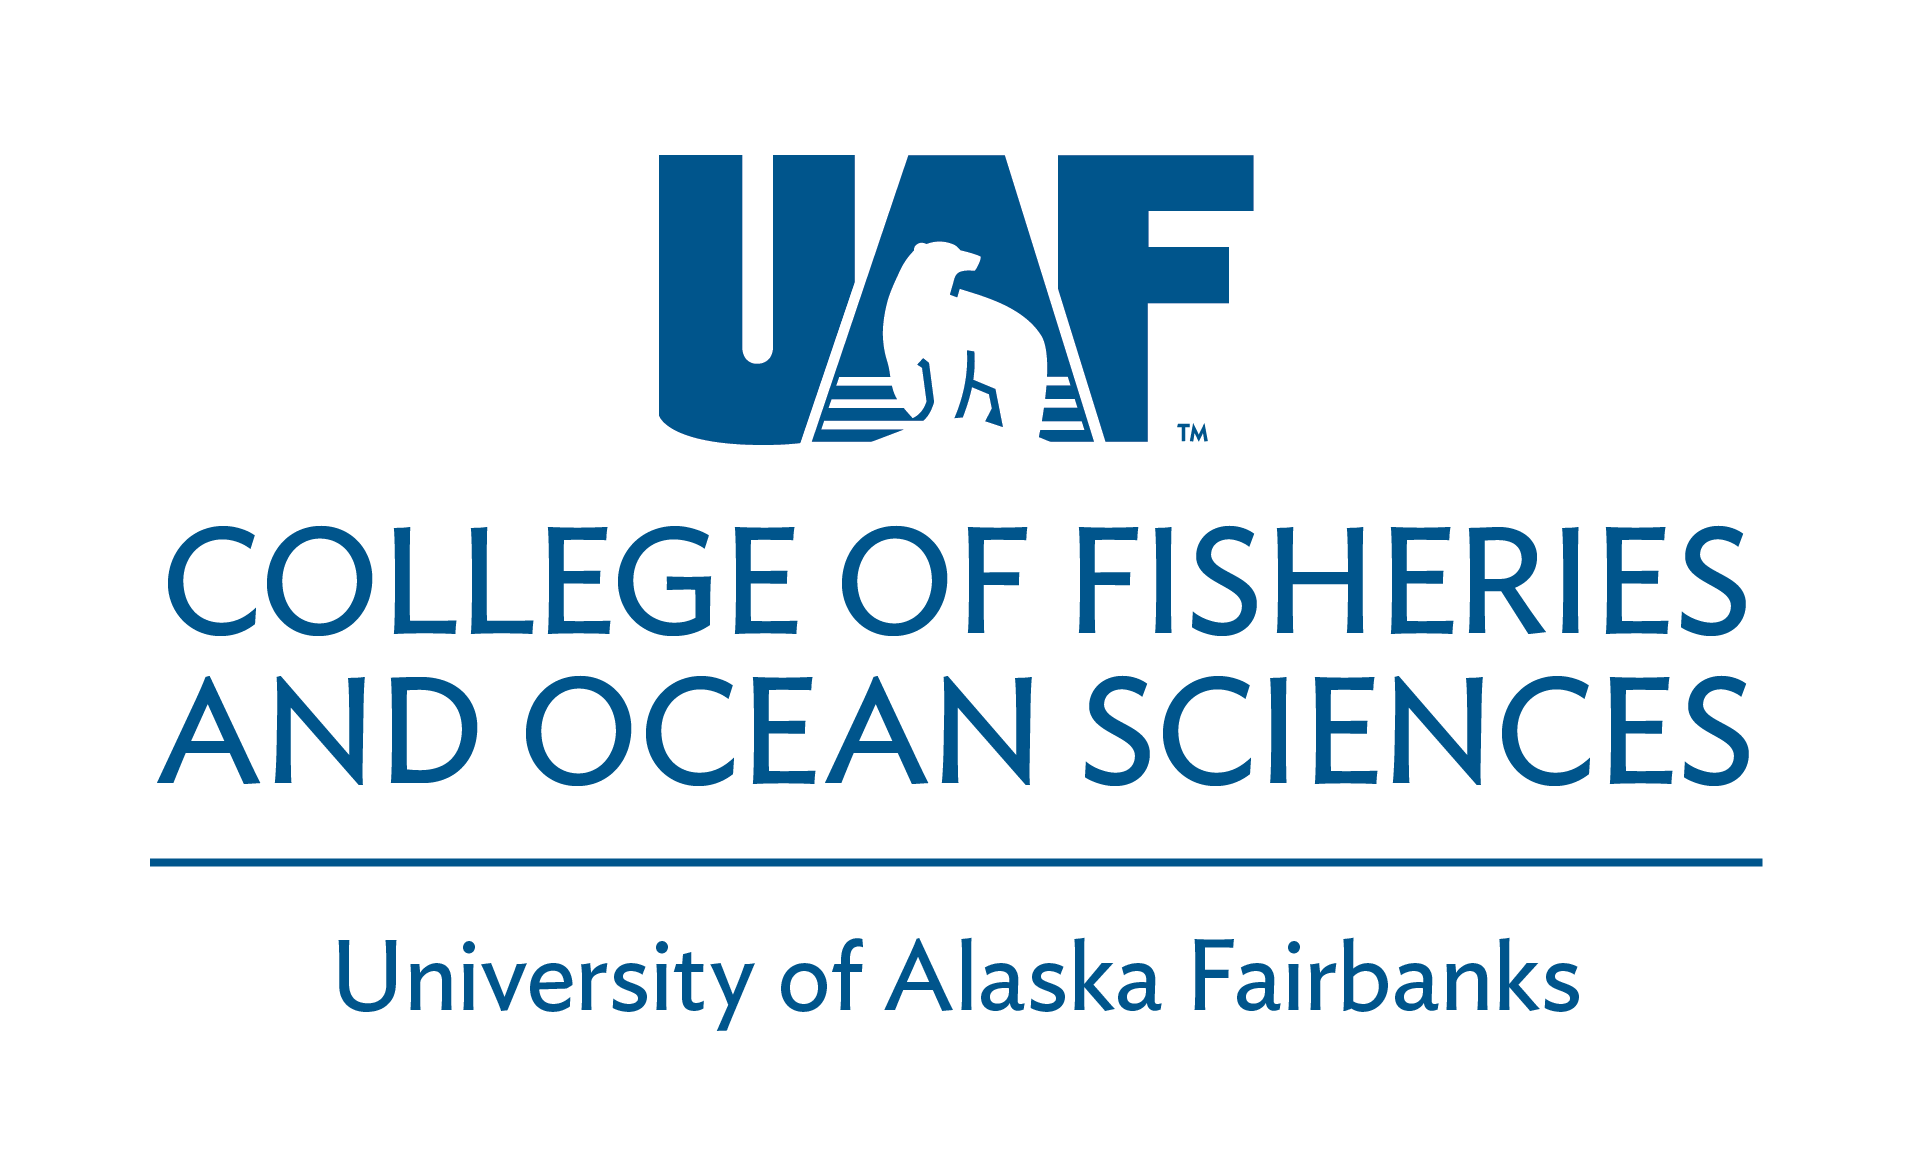 College of Fisheries and Ocean Sciences